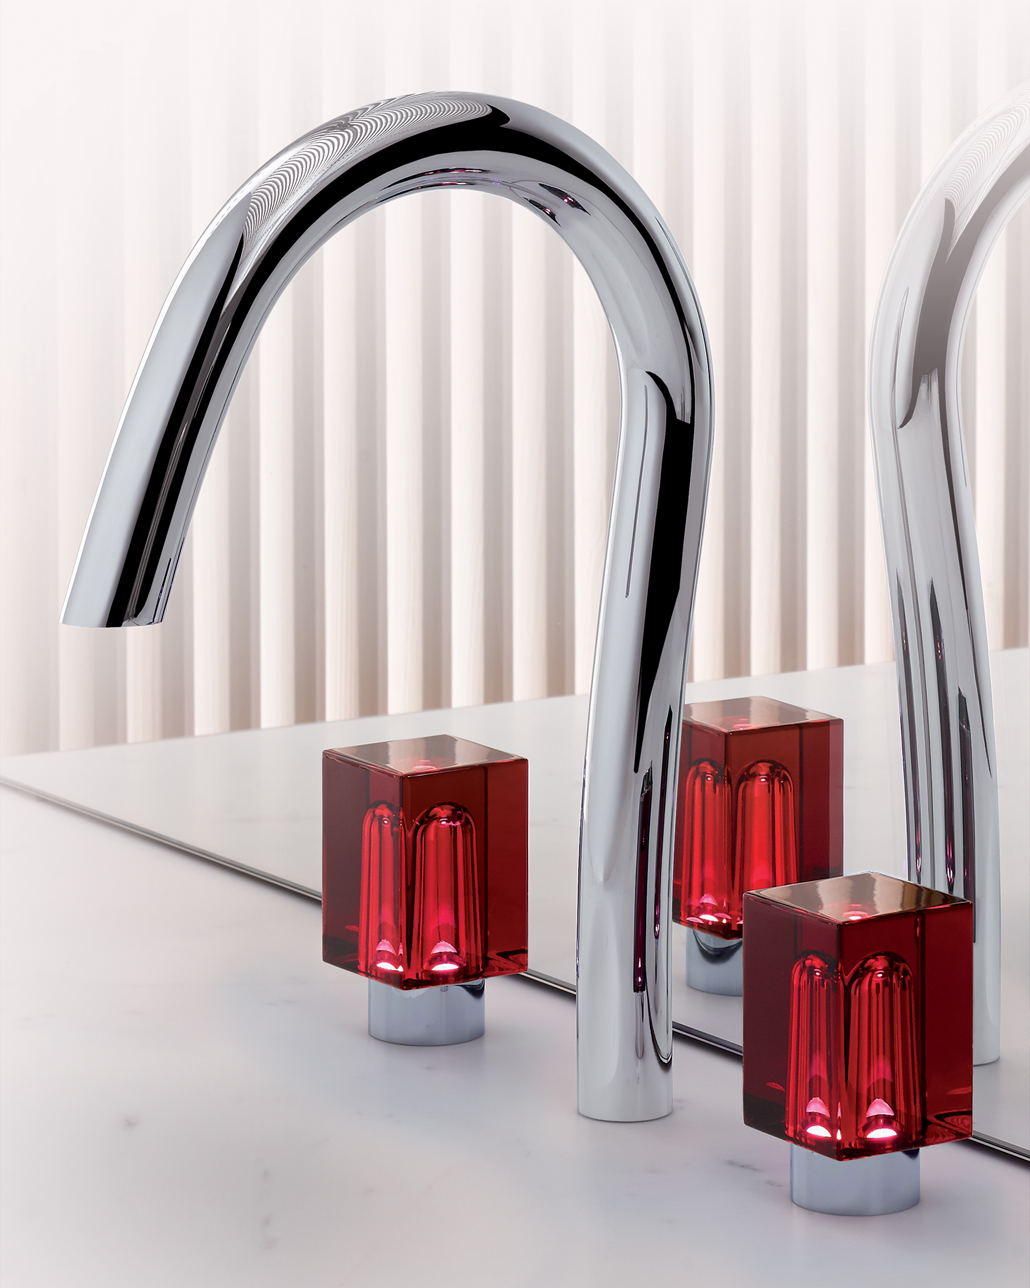 beyond_crystal_ambiance_151_chrome_rouge2.jpg